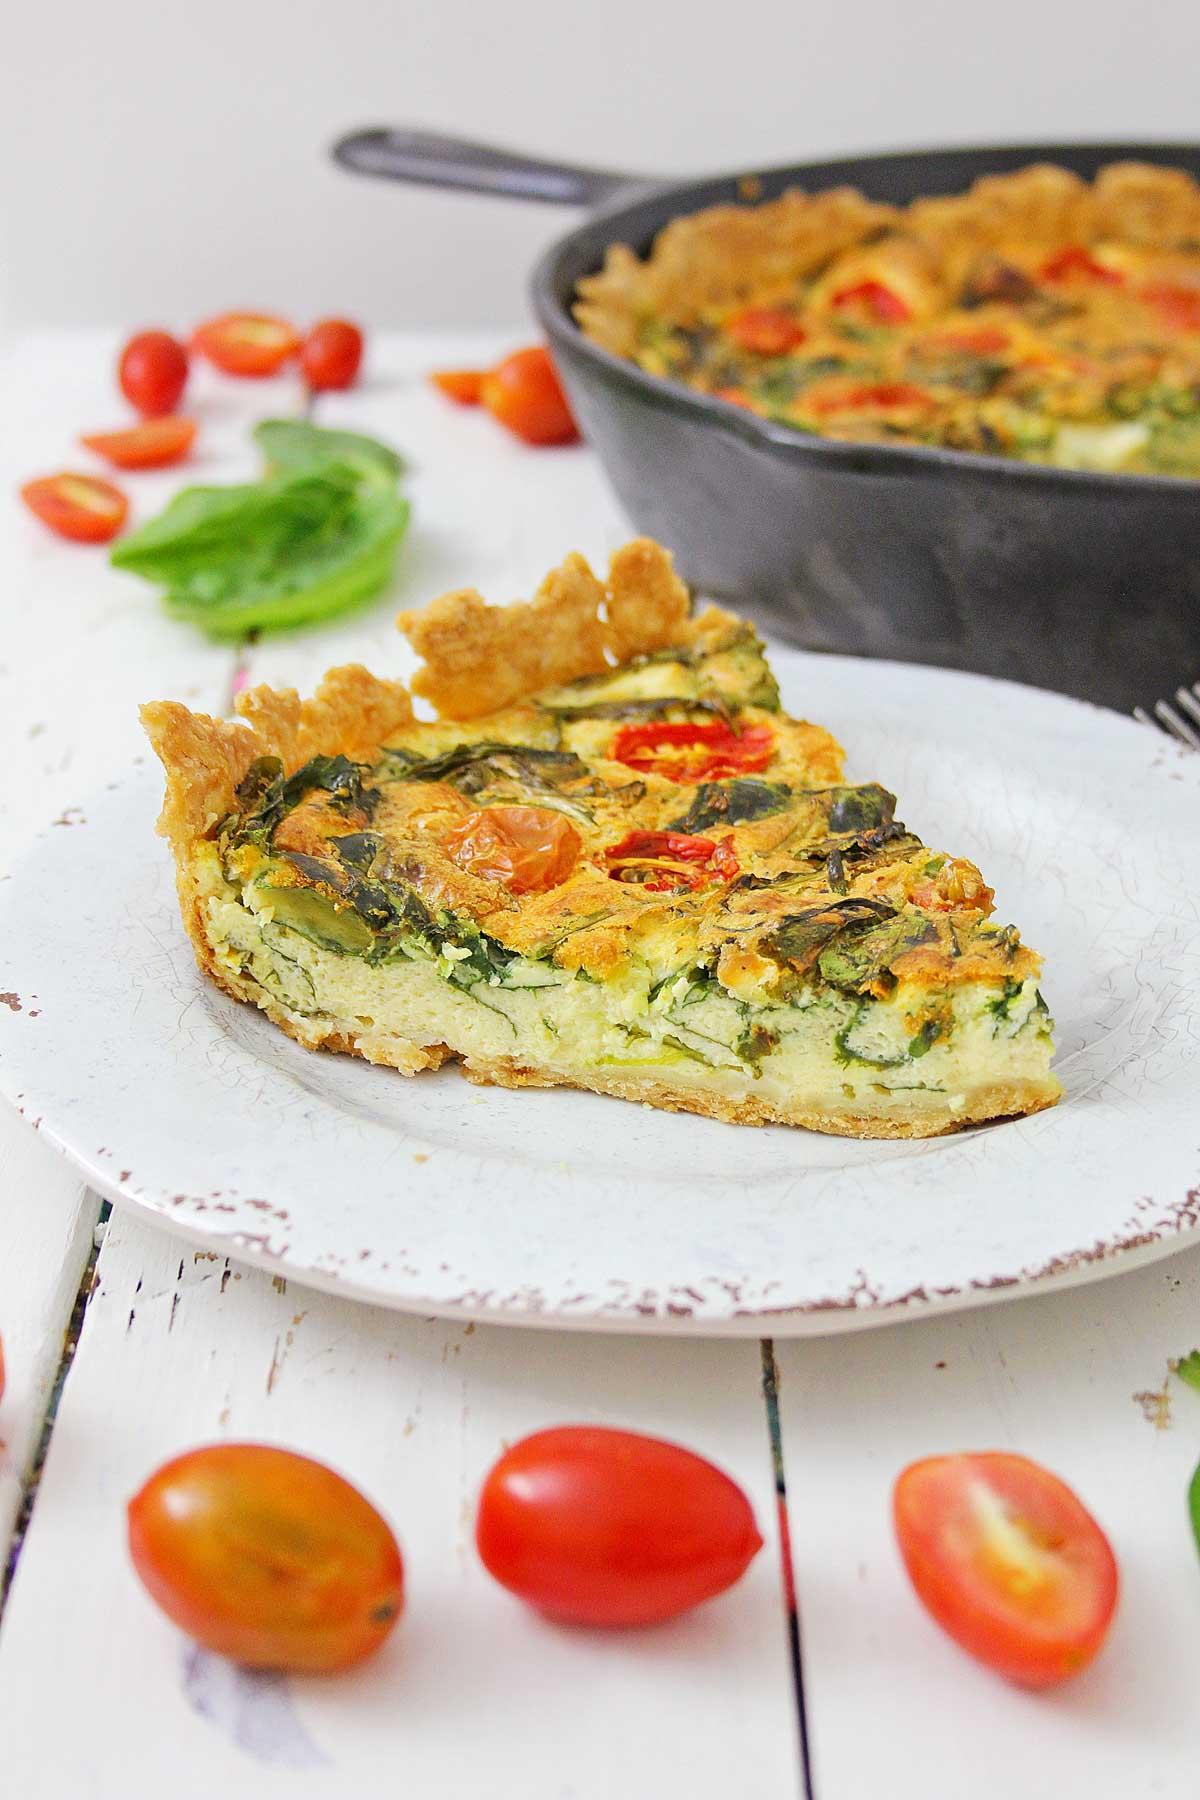 slice of quiche on a white plate with tomatoes on the table.